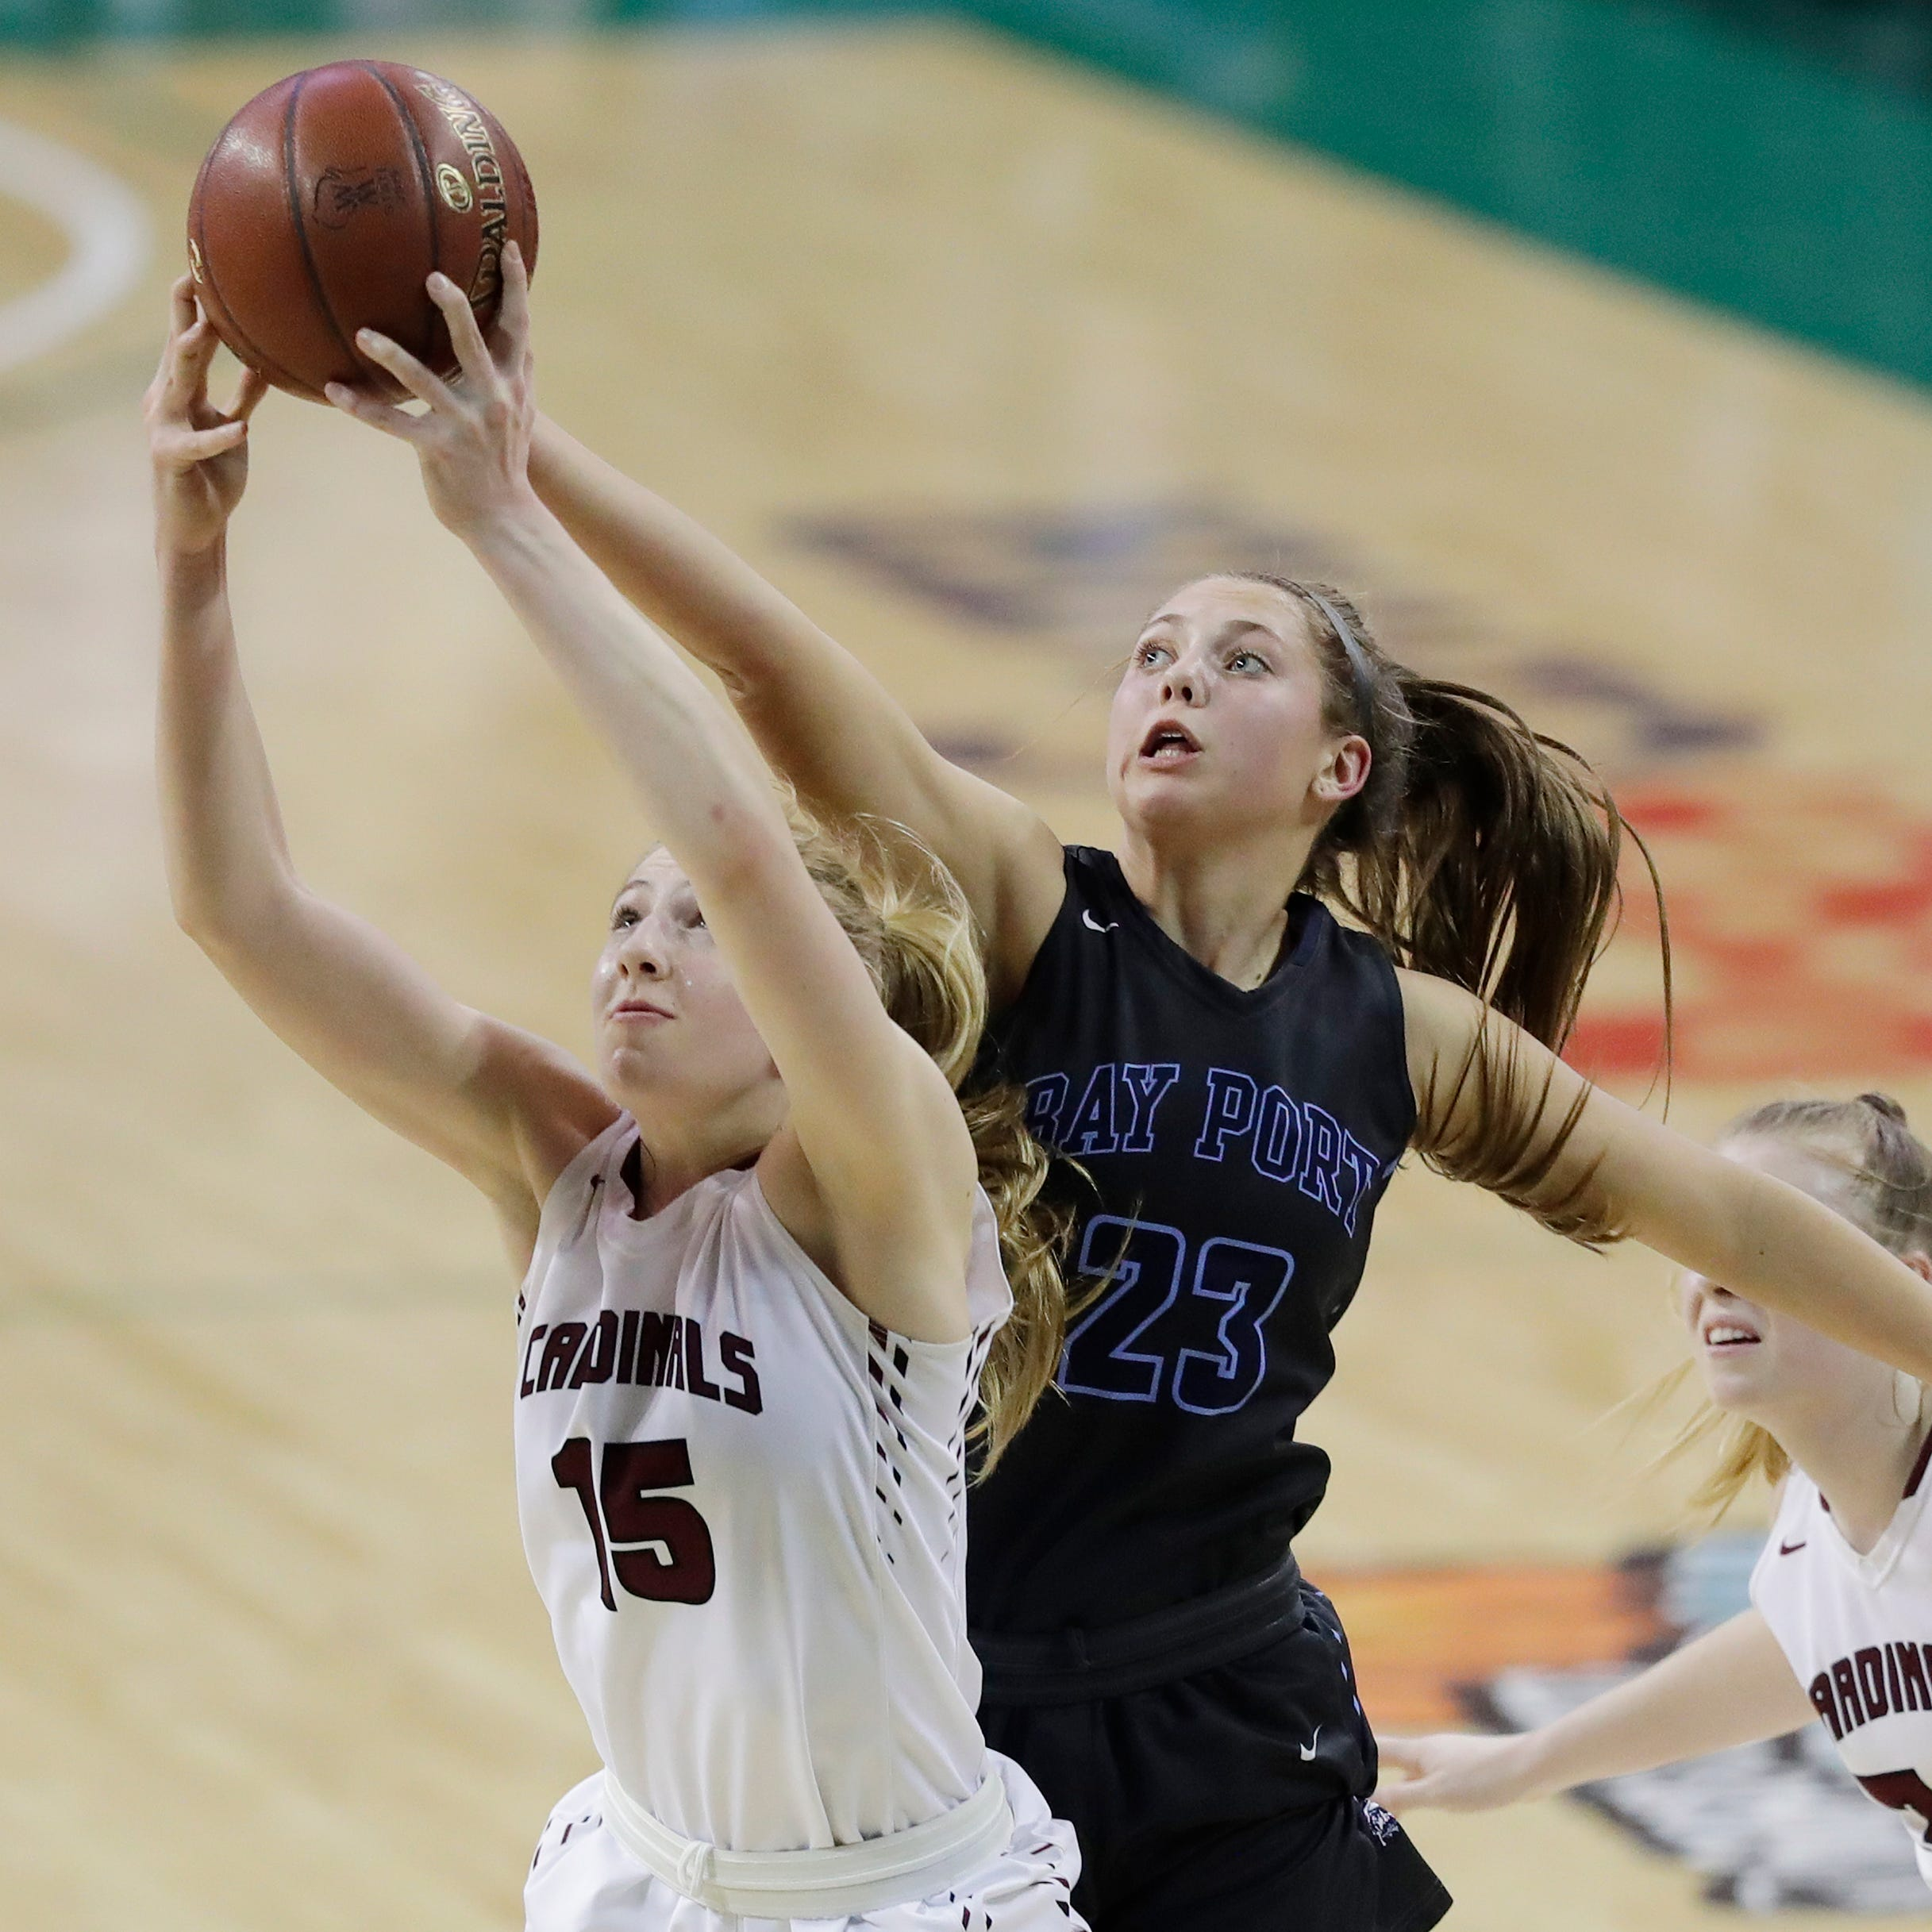 Bay Port's Nagel leads local players on AP all-state girls basketball team